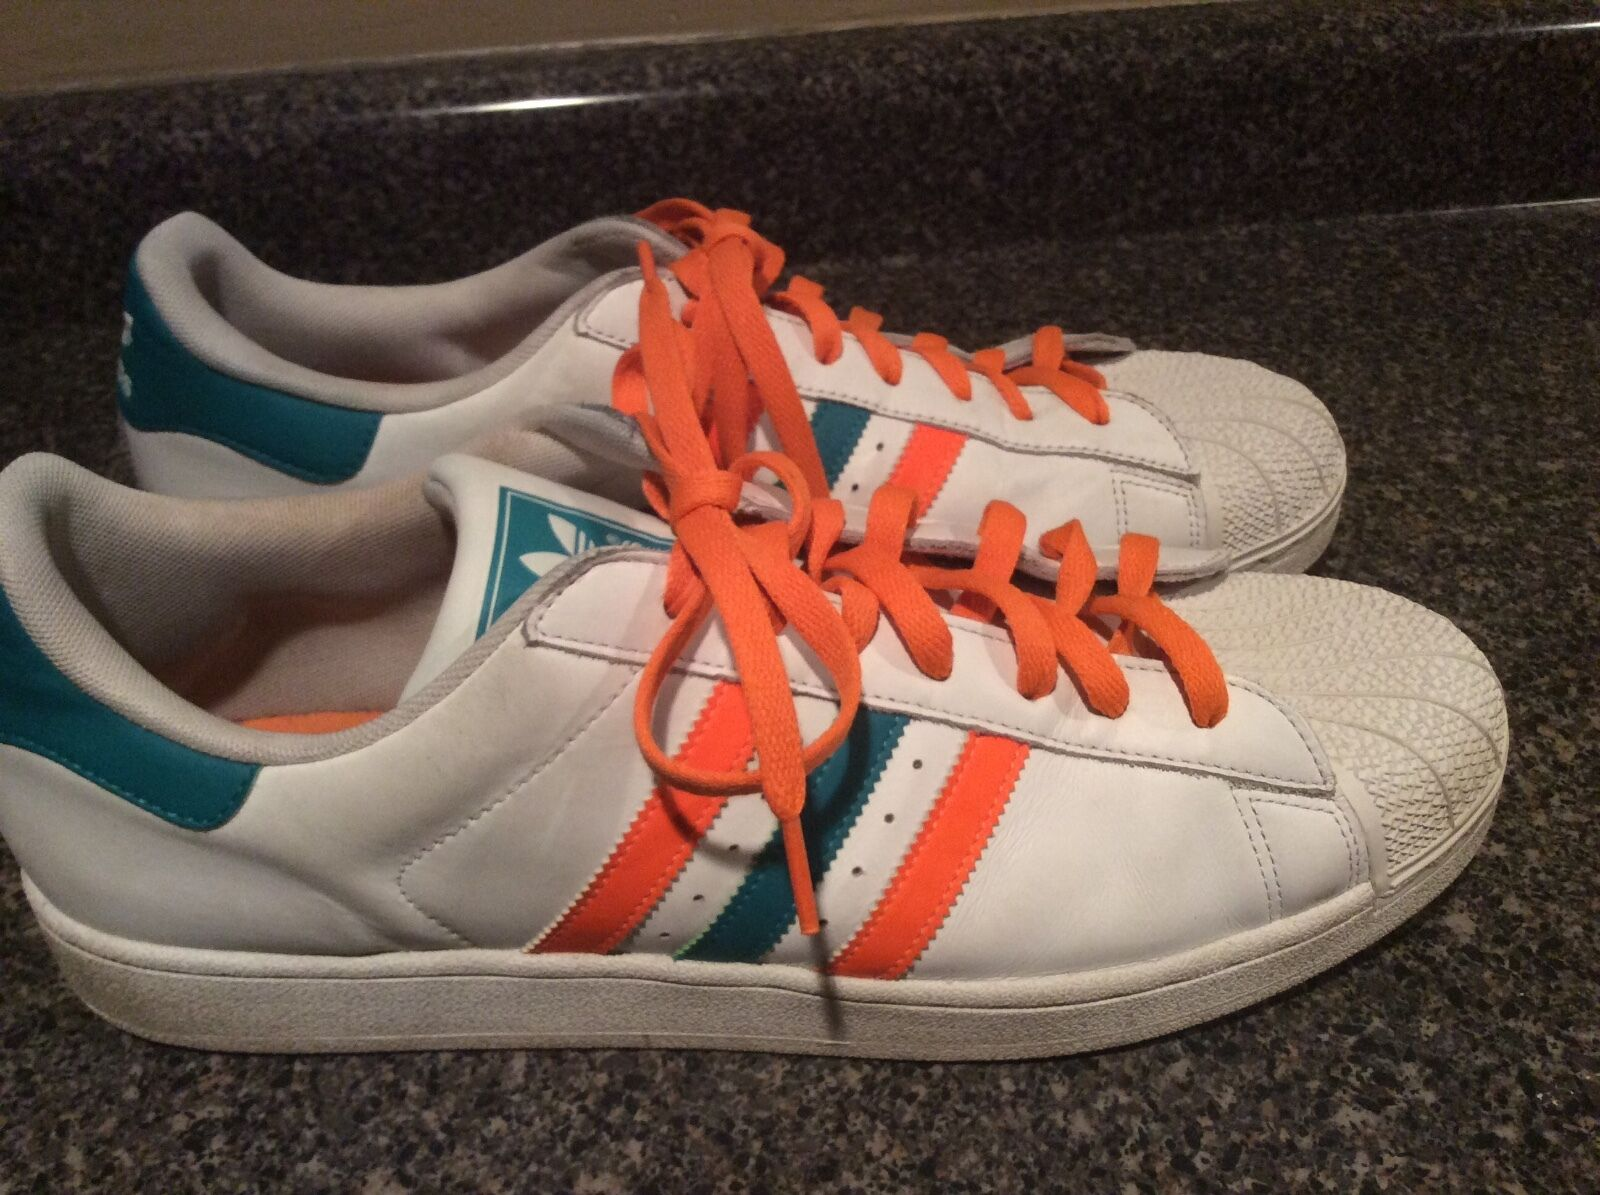 Adidas Miami Hurricanes Leather Mens Comfortable The most popular shoes for men and women